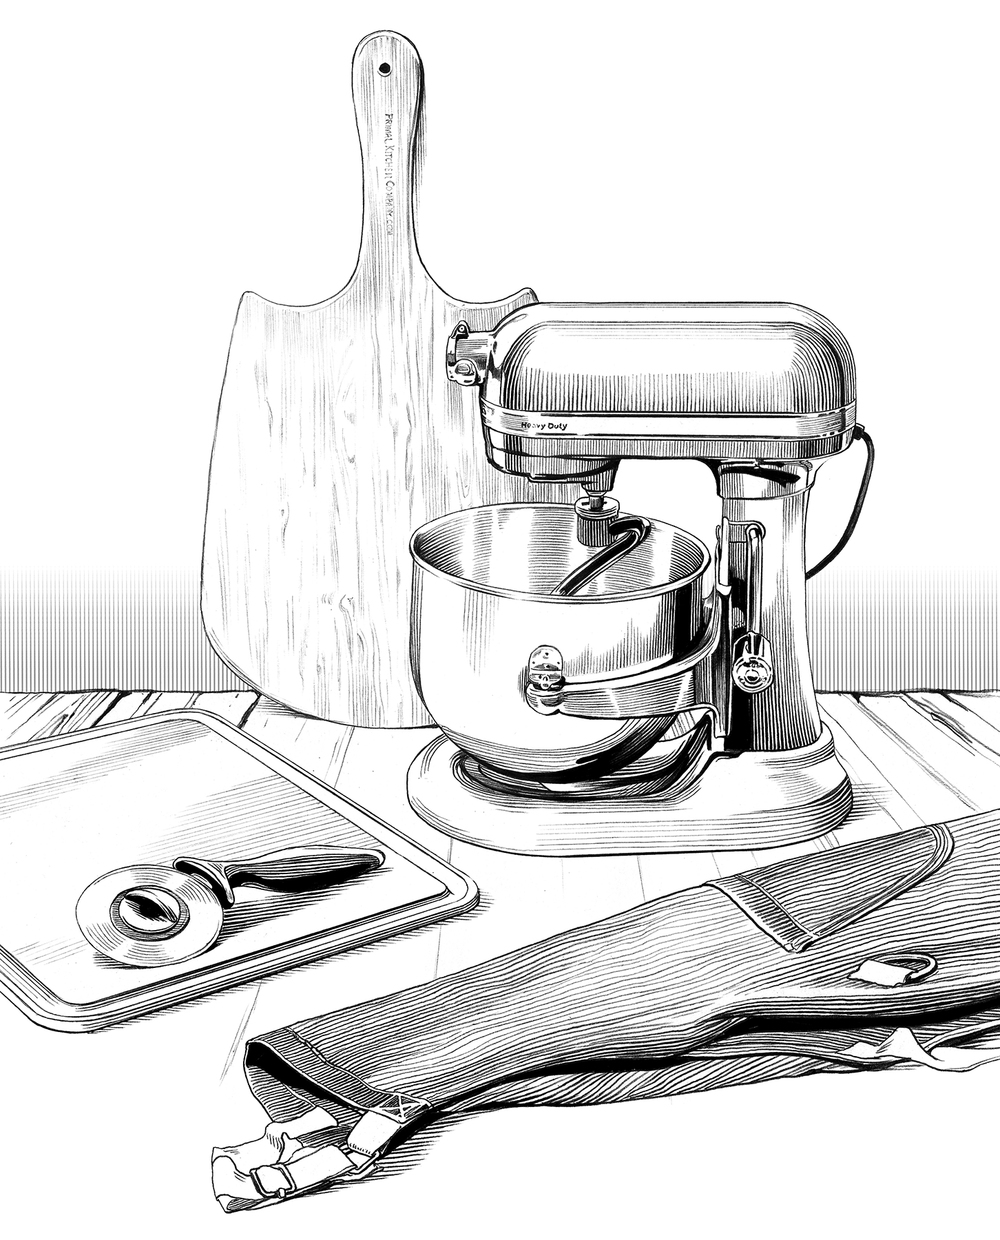 PIZZA MAKING TOOLS  Wired, November 2015